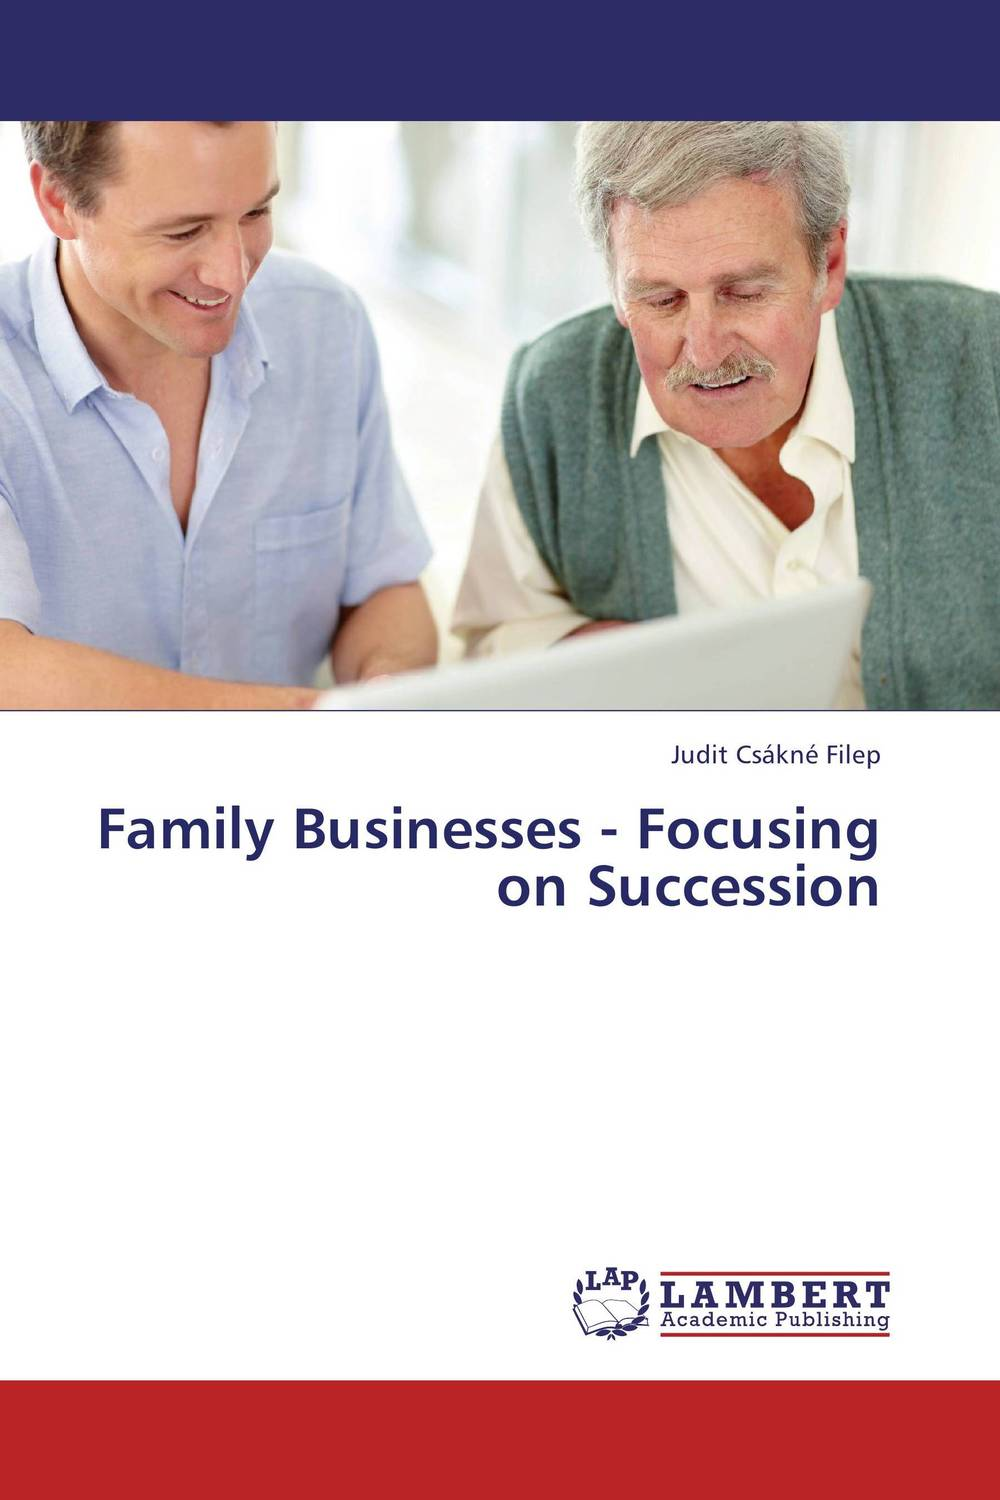 Family Businesses - Focusing on Succession changing attitude of family towards women in family business